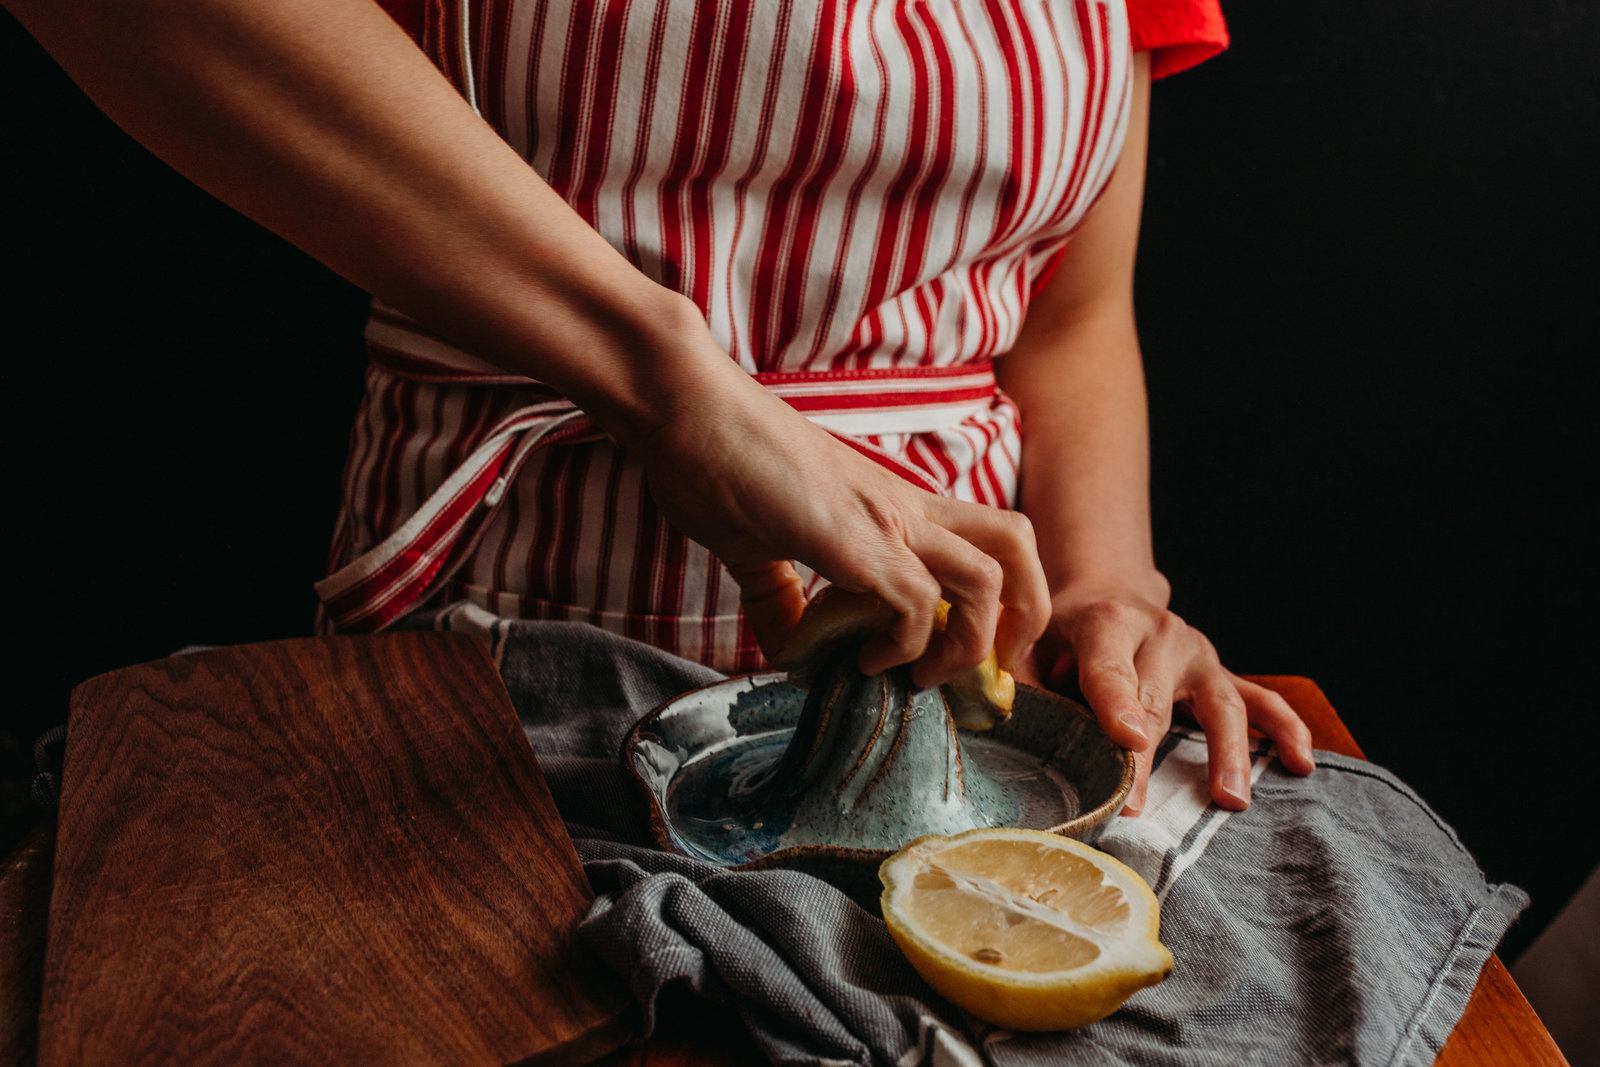 woman in red striped apron juices lemons on a pottery juicer